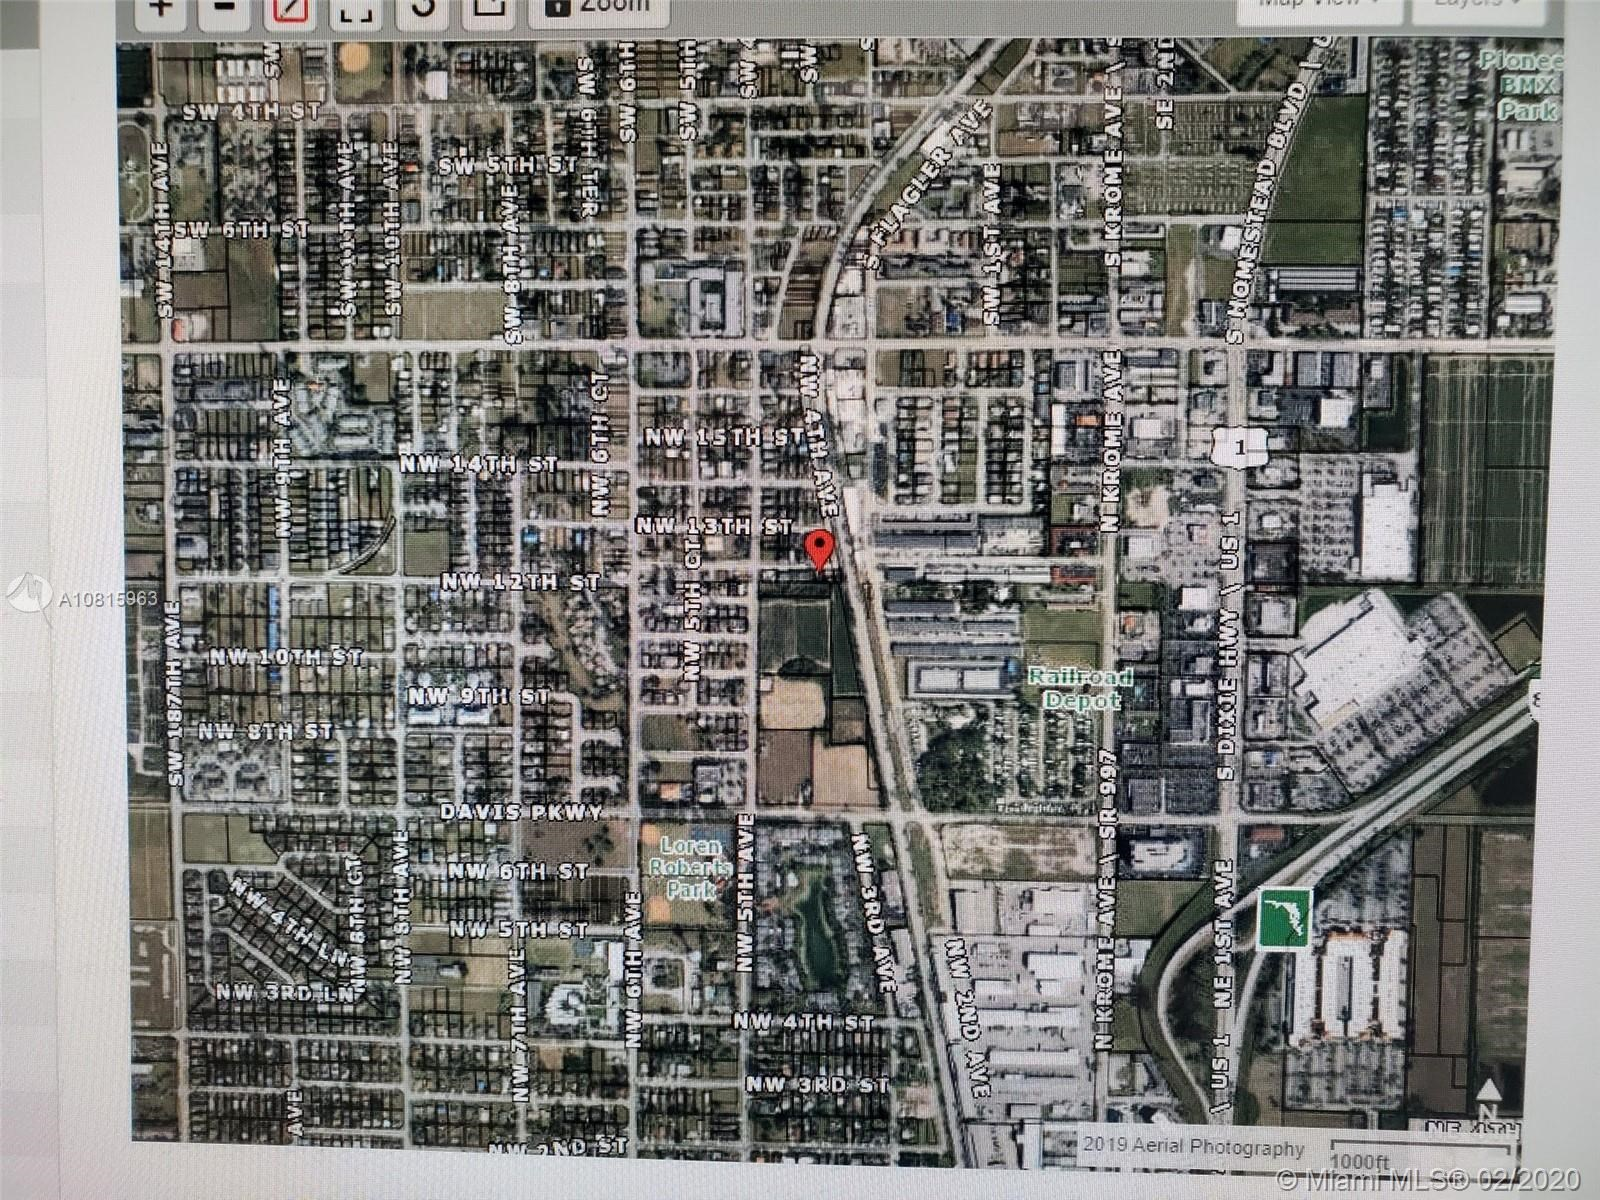 NW 12 St NW 3rd ave, Florida City, FL 33034